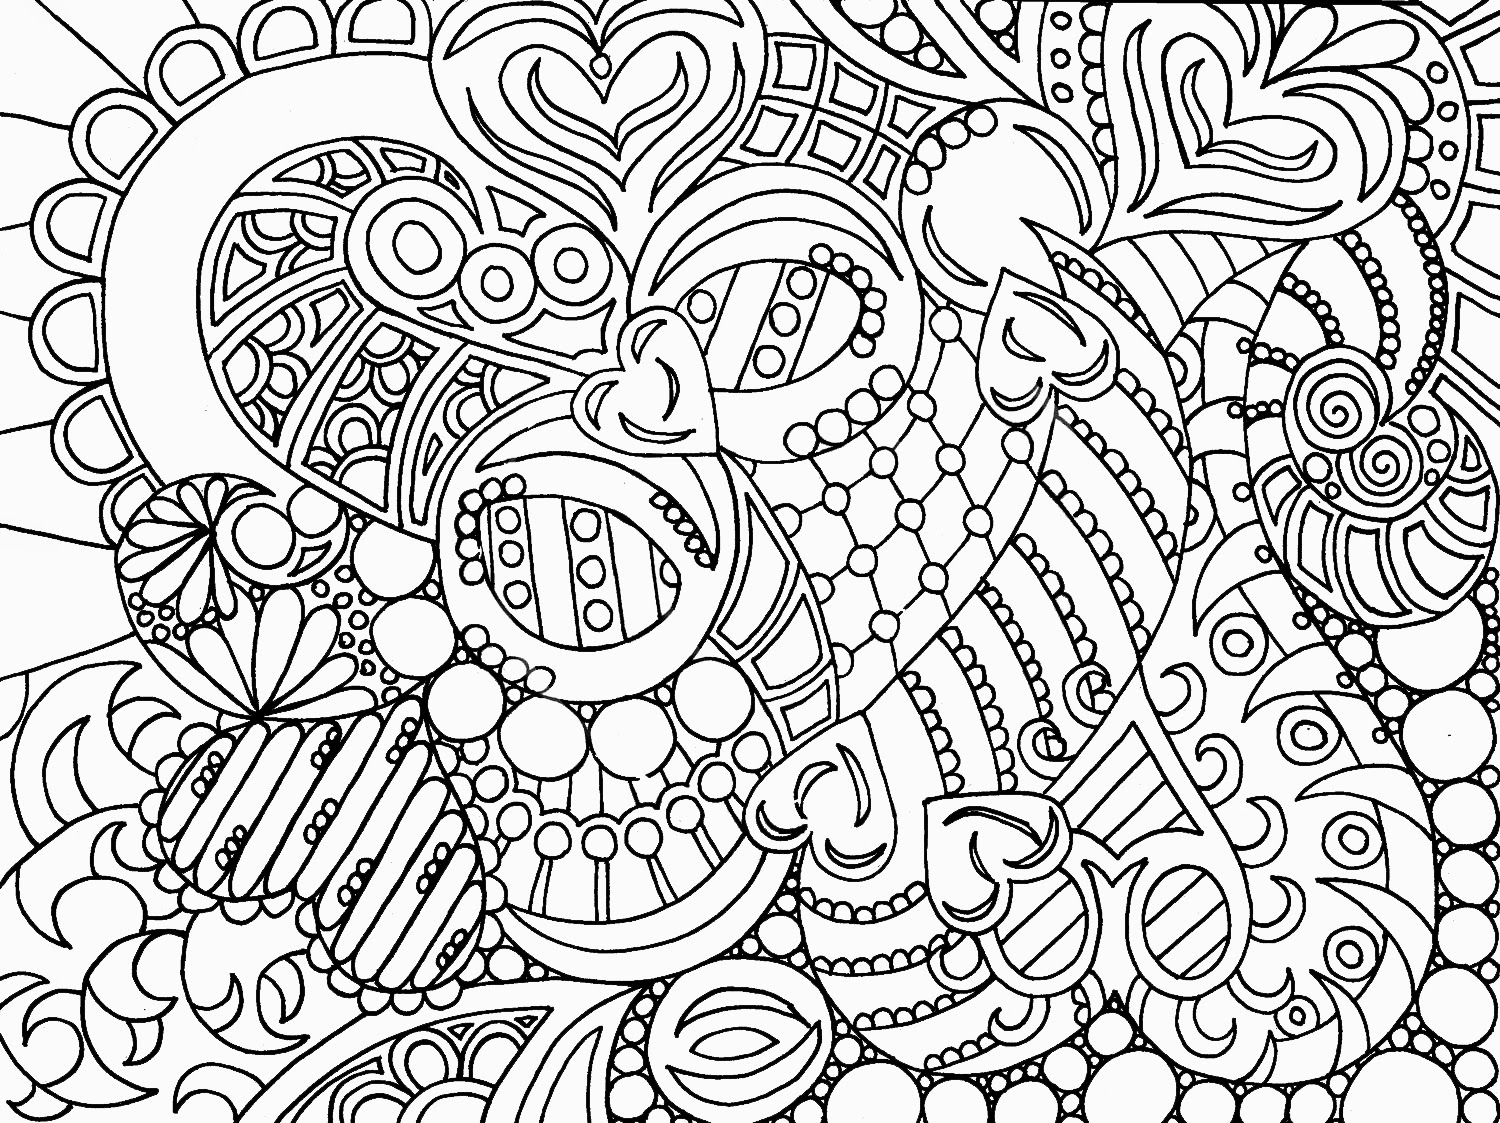 1500x1123 Abstract Art Hd Coloring Pages For Adult Abstract Art Coloring